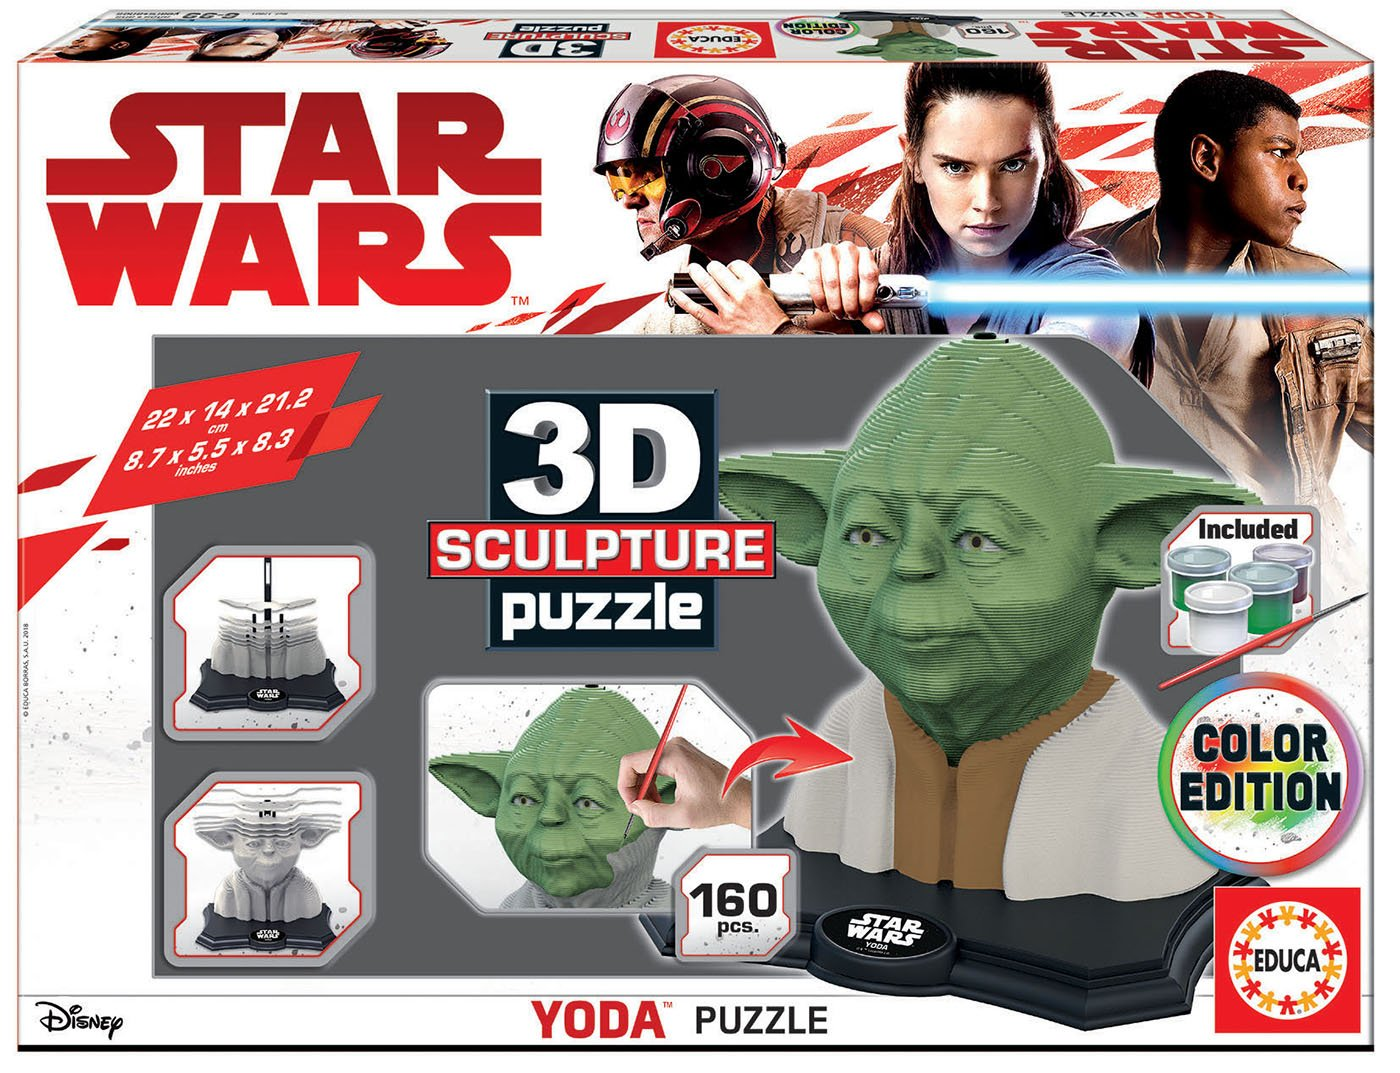 educa-3d-puzzle-sculpture-star-wars-yoda-160-teile-puzzle-educa-17801